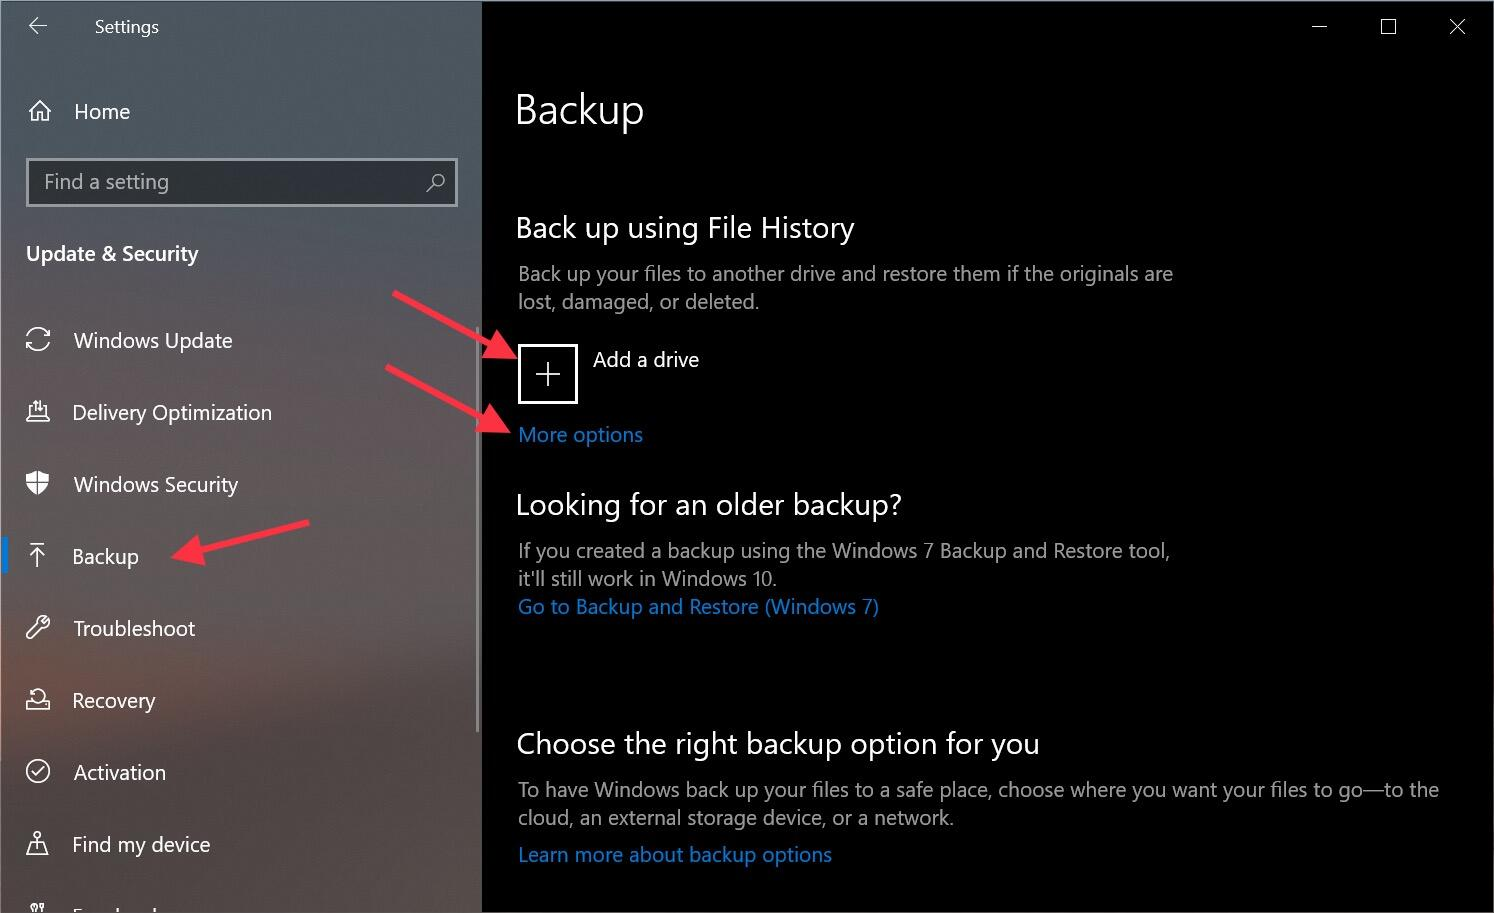 Windows 10 Backup